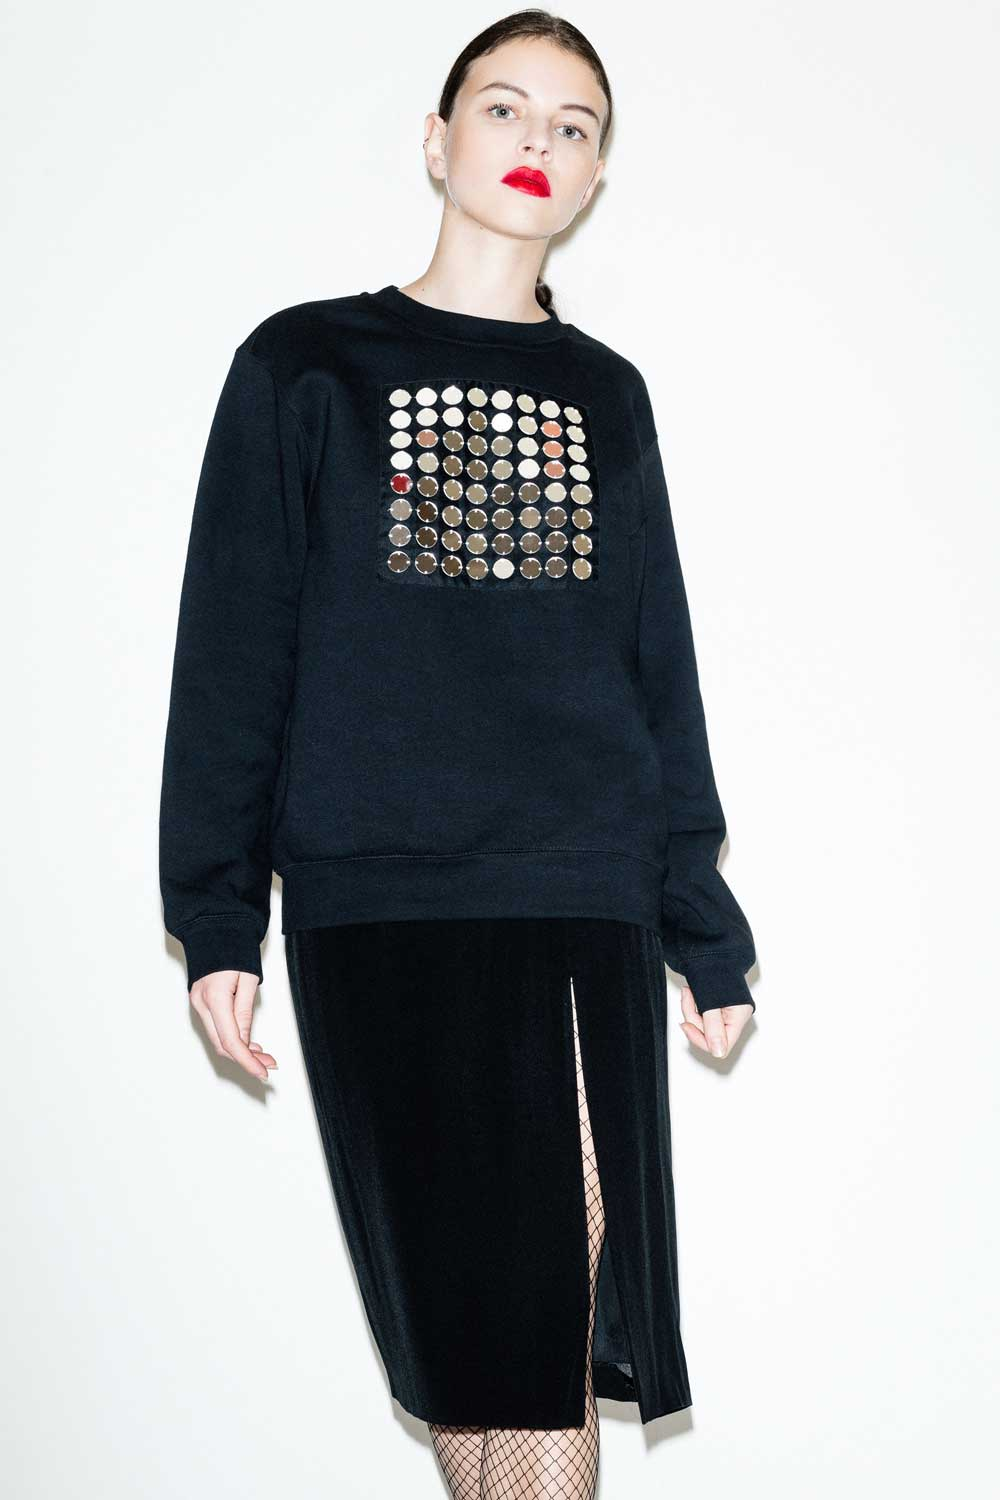 fflag-sweatshirt-ornement-miroir-broderie-couture-6